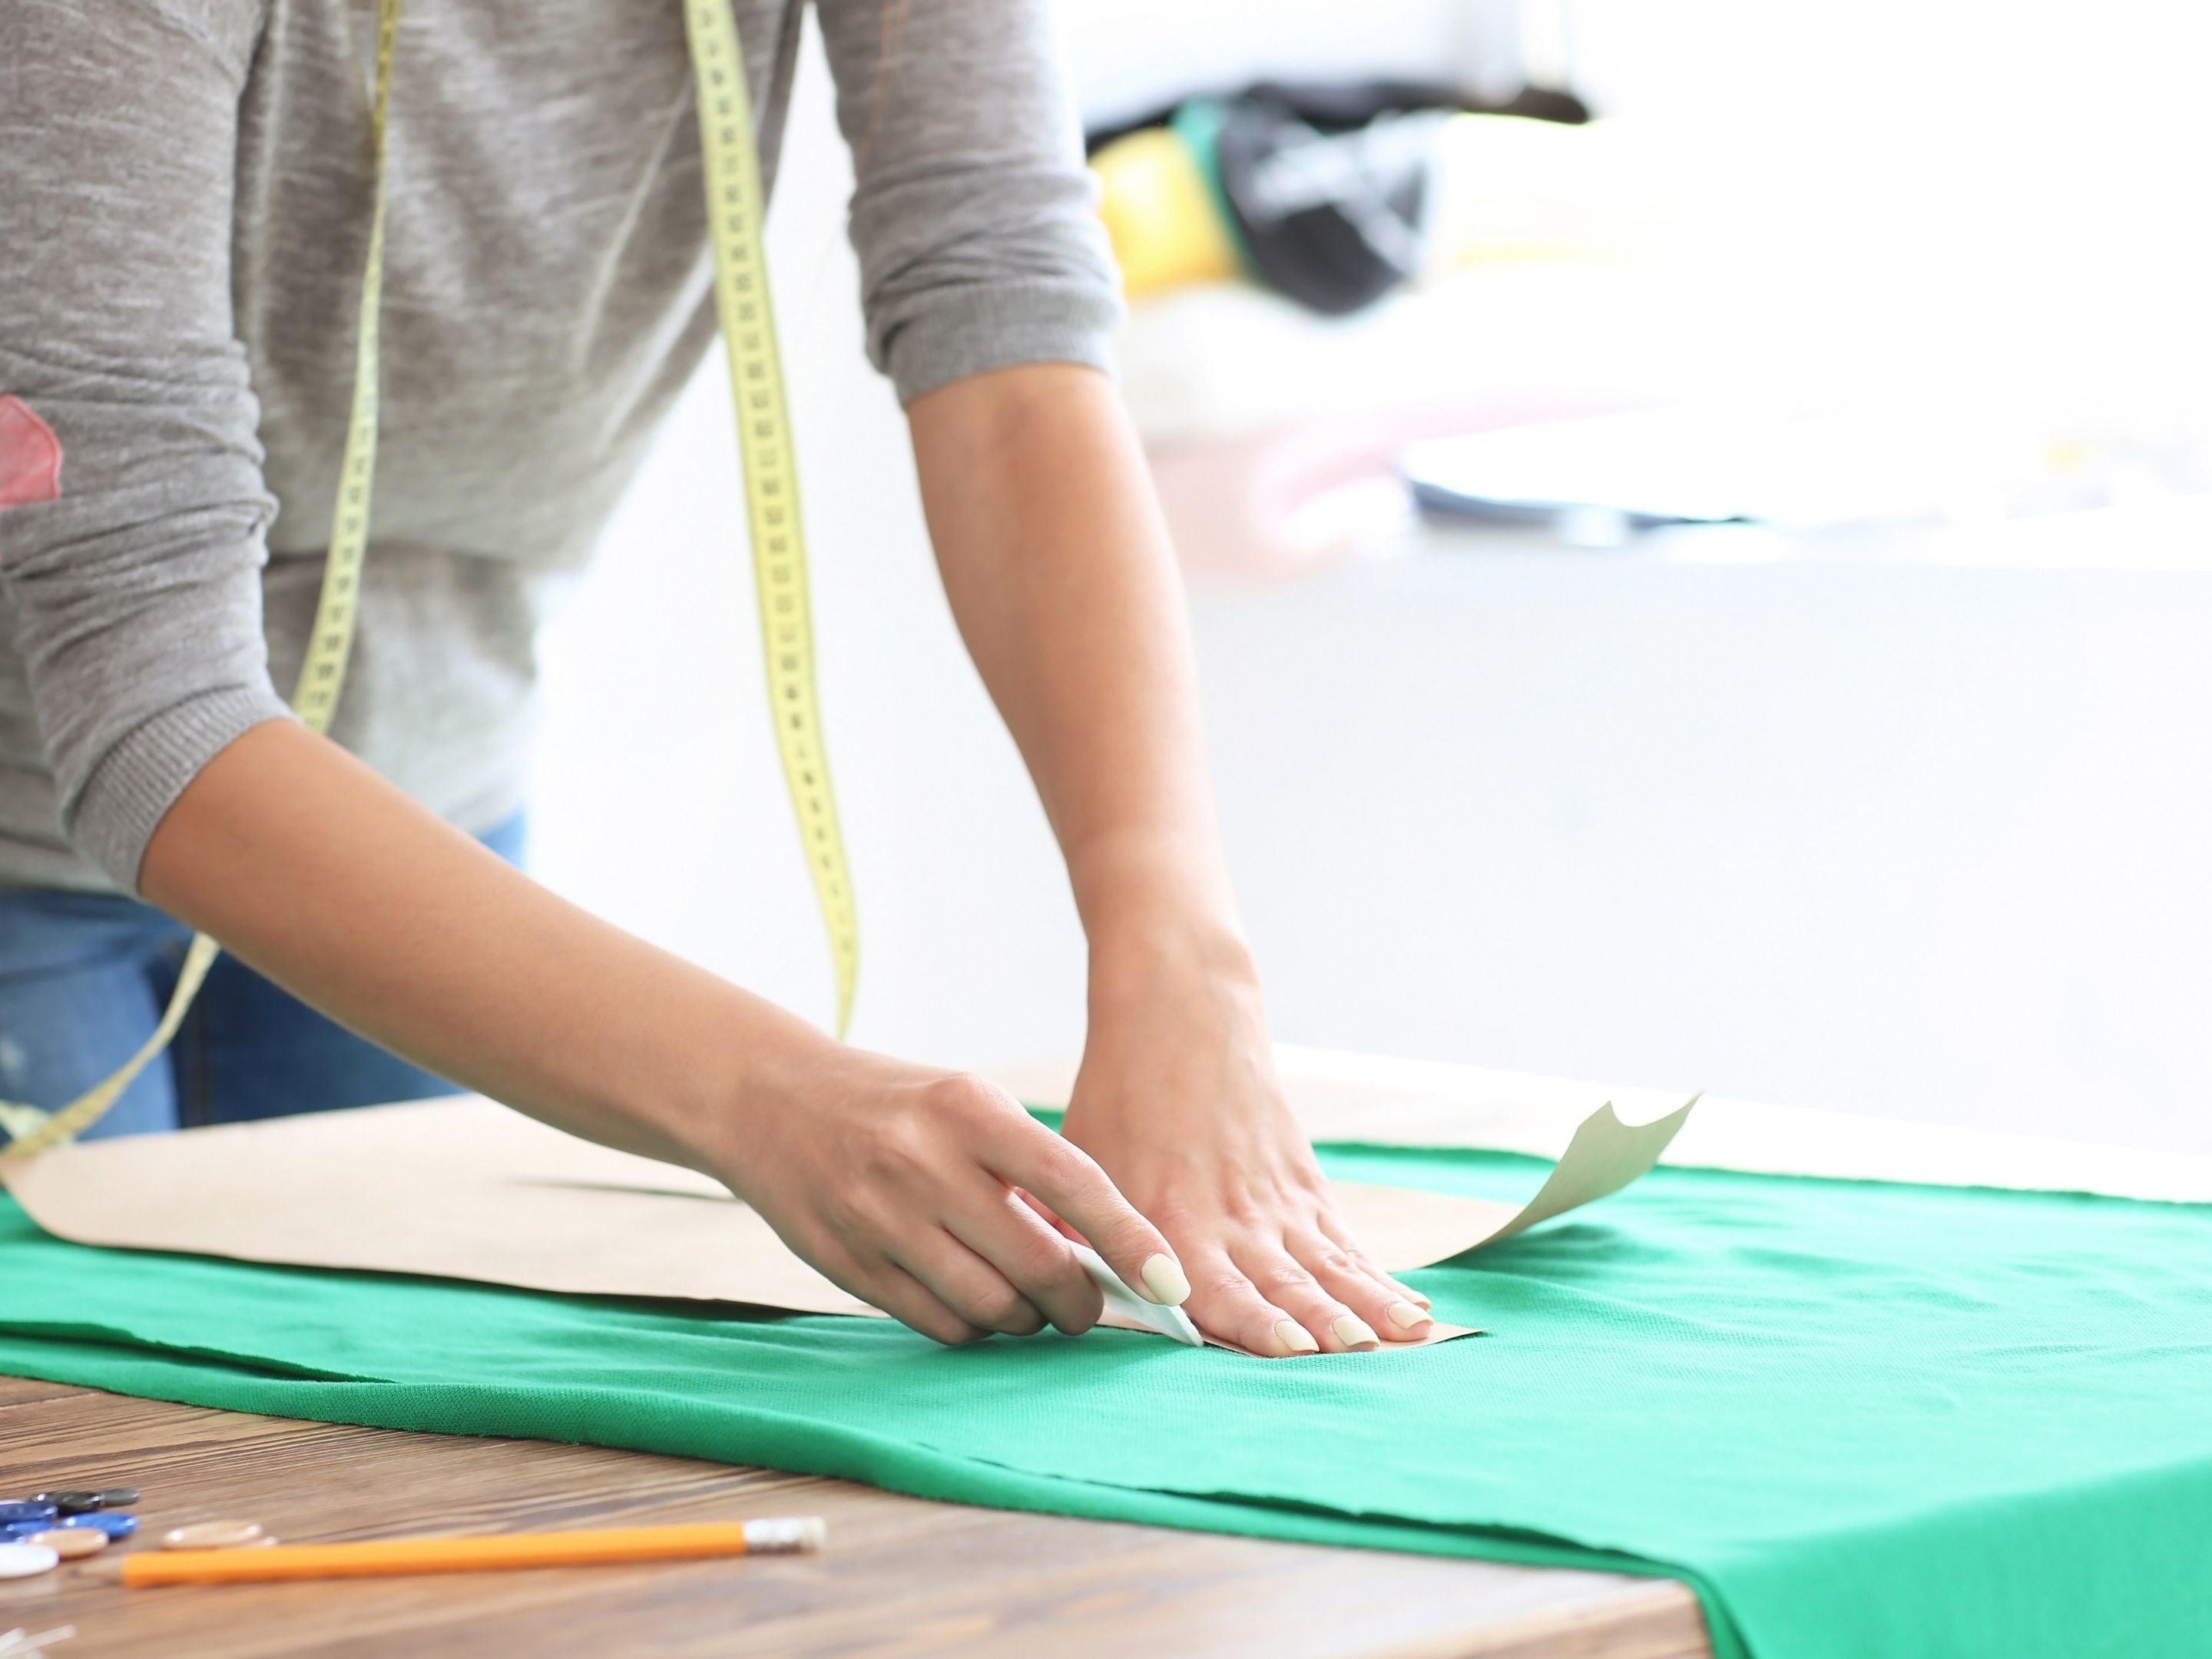 Sewist Cutting Out Fabric With a Pattern